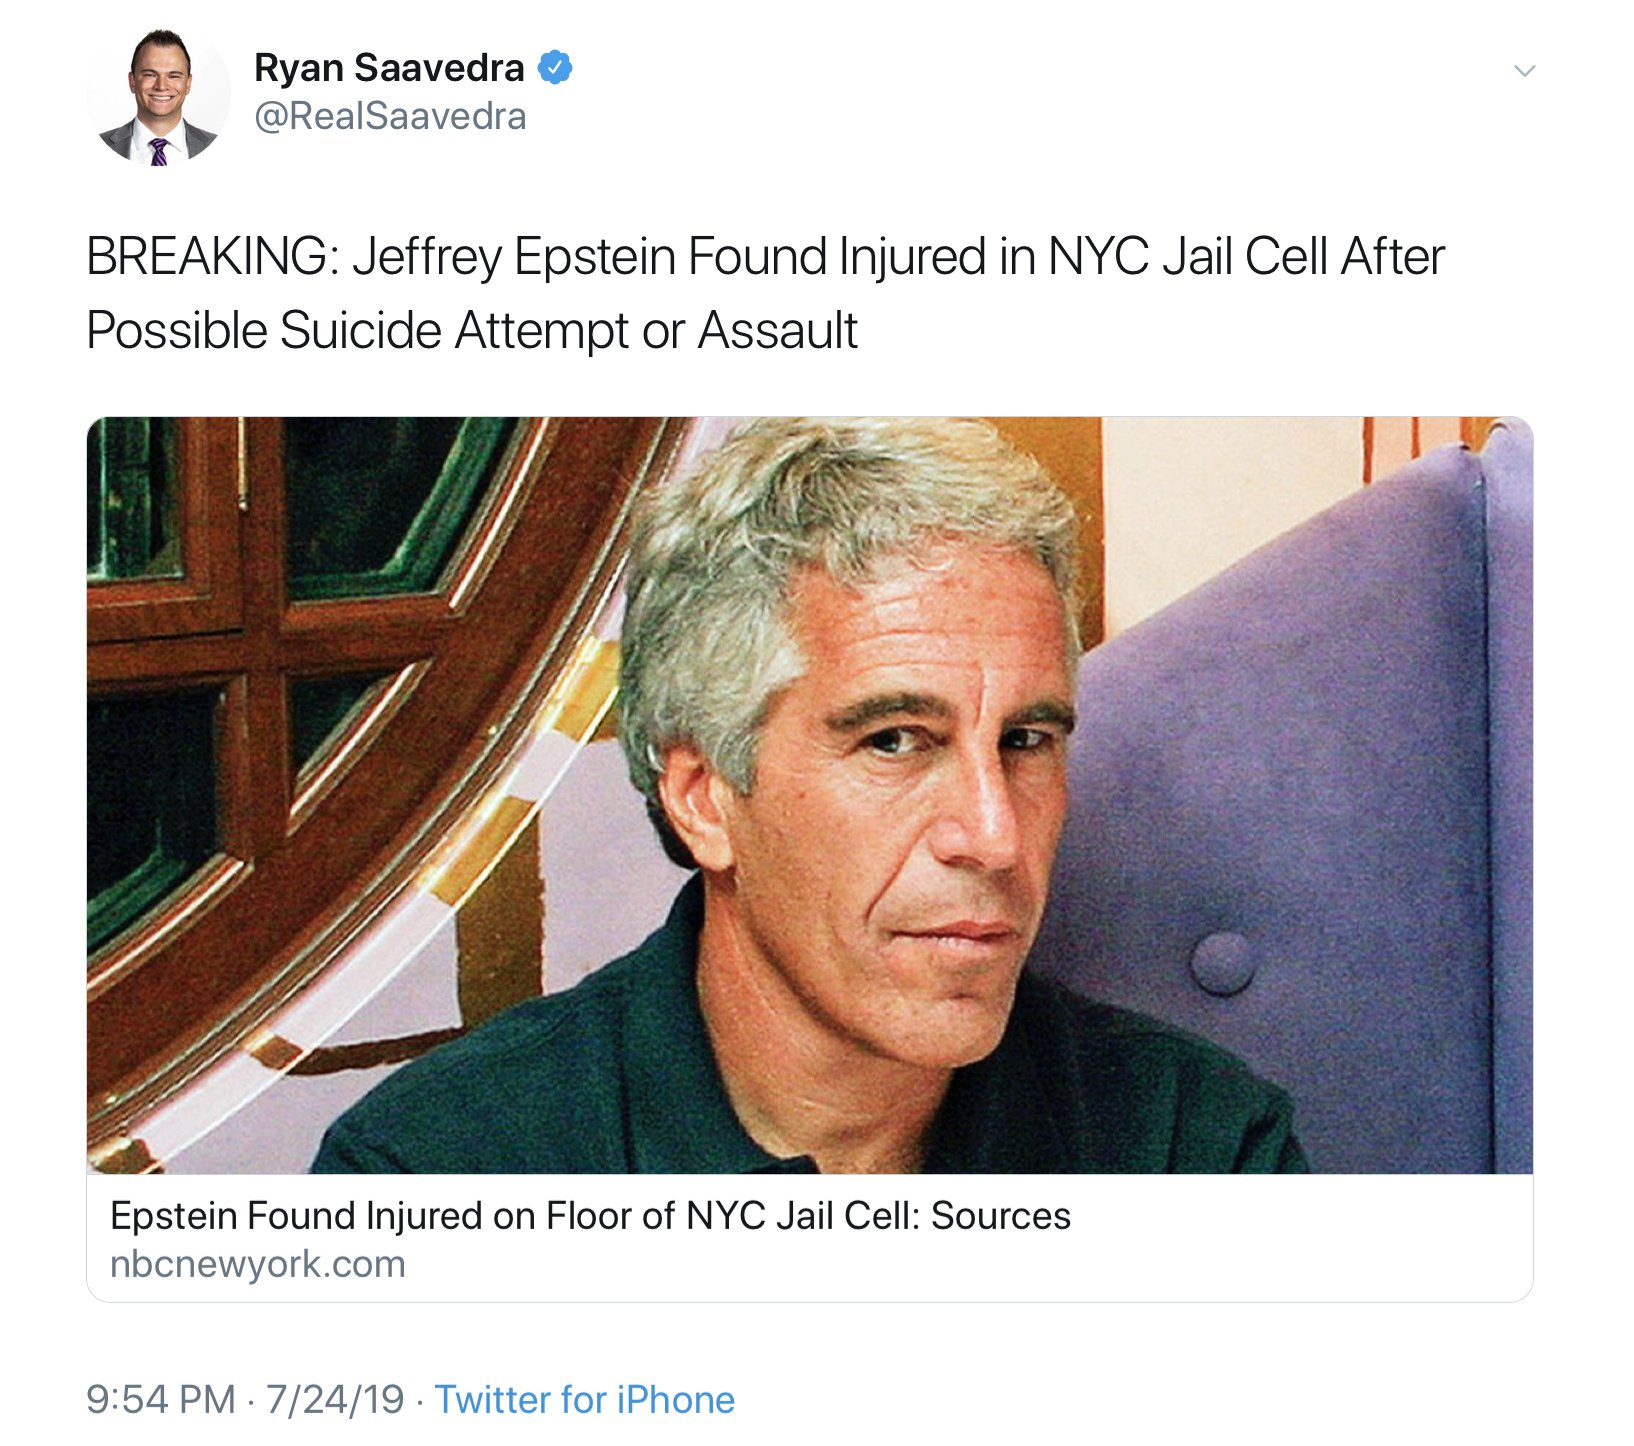 QAnon July 25 2019 - Knowingly - Epstein Injuried